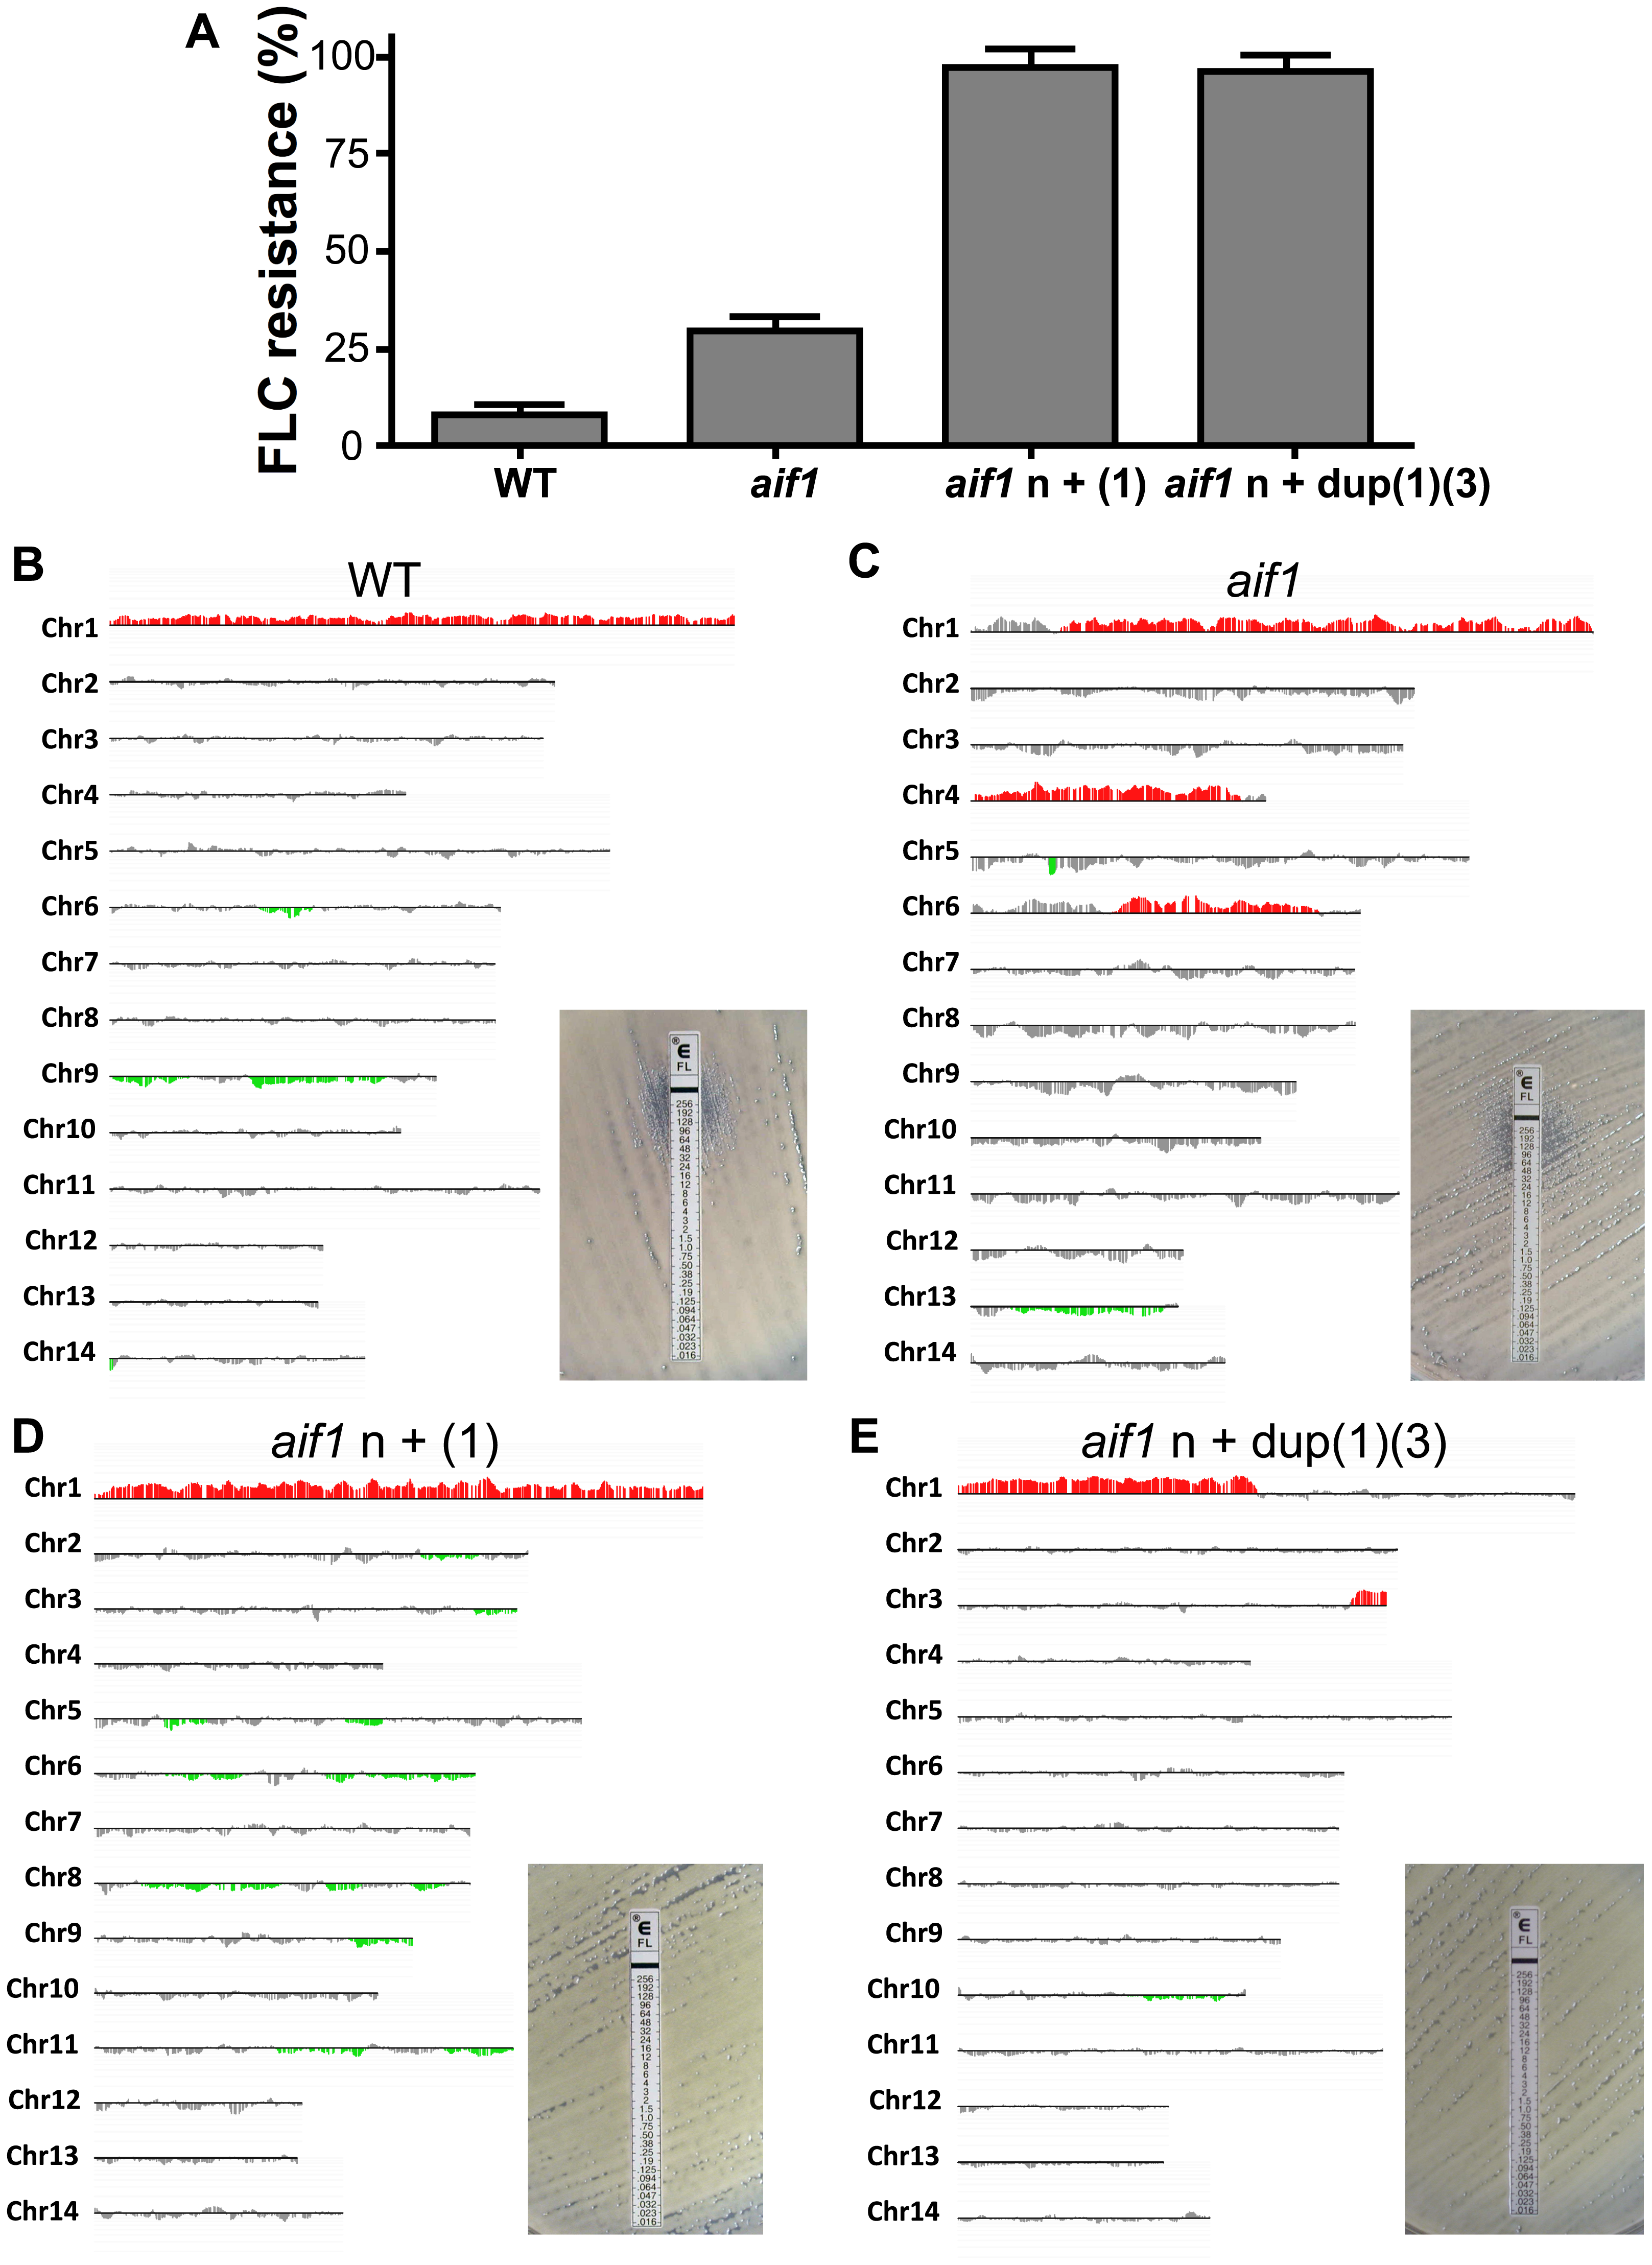 Strains recovered from treated mice are fluconazole resistant and aneuploid. A